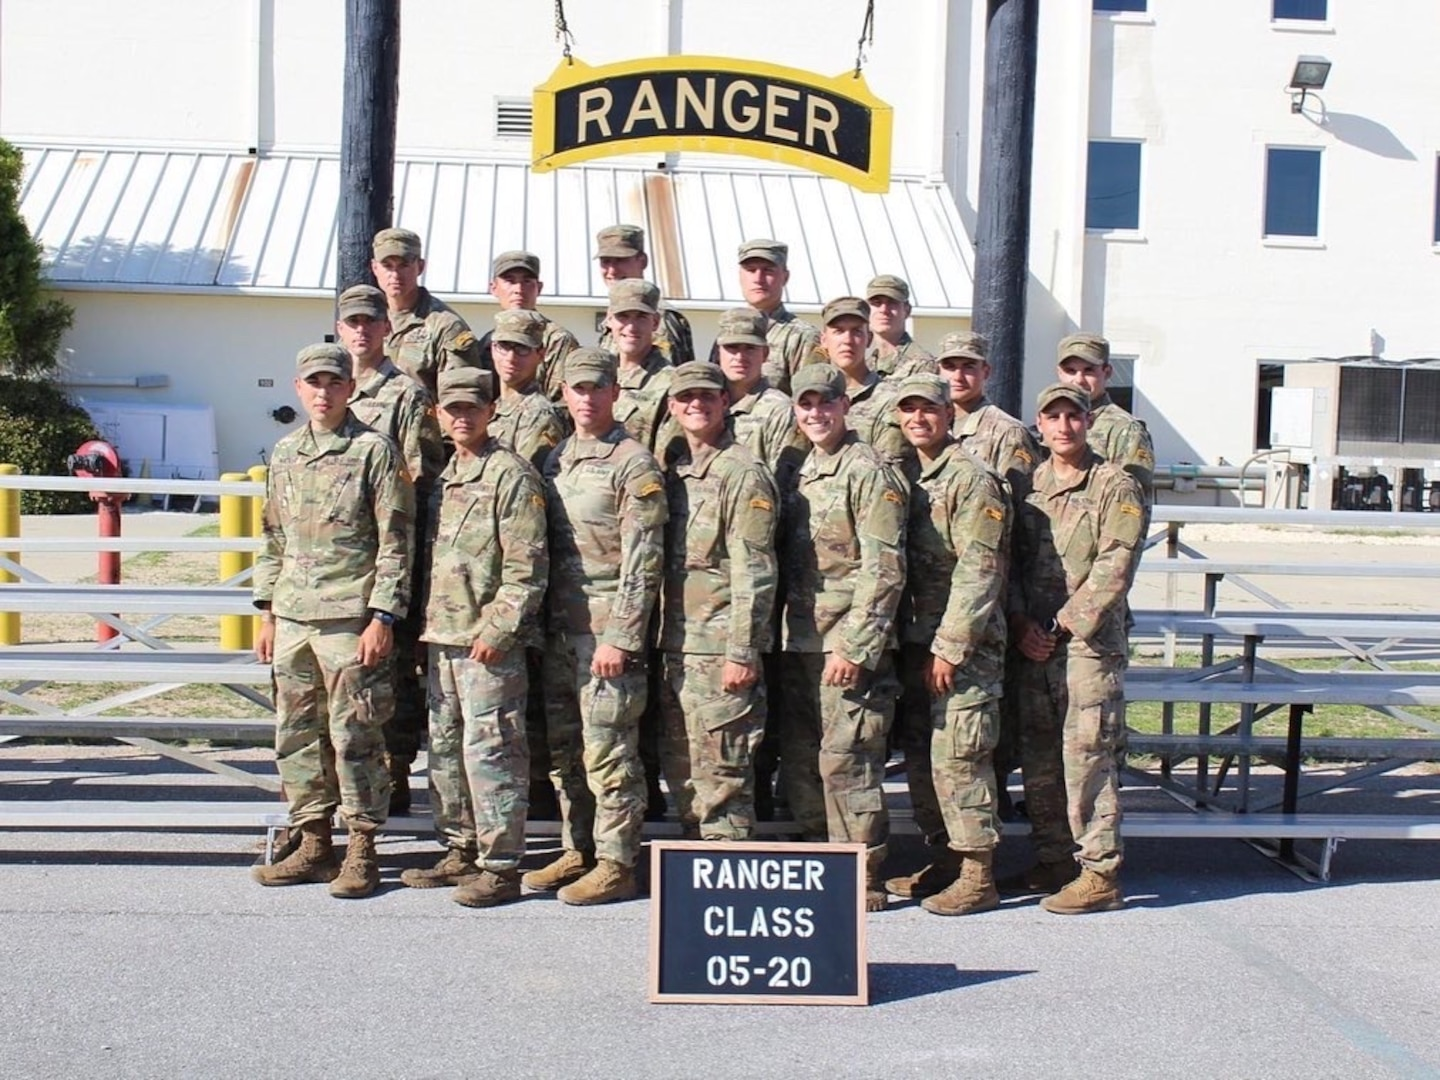 First Lt. Aidan O'Connor (front row, third from the right) poses alongside his fellow Ranger School Graduates after successfully completing the course. O'Connor, a graduate of the Virginia Military Institute, is currently assigned as the executive officer to Delta Company, 3rd Battalion, 116th Infantry Regiment, 116th Infantry Brigade Combat Team.